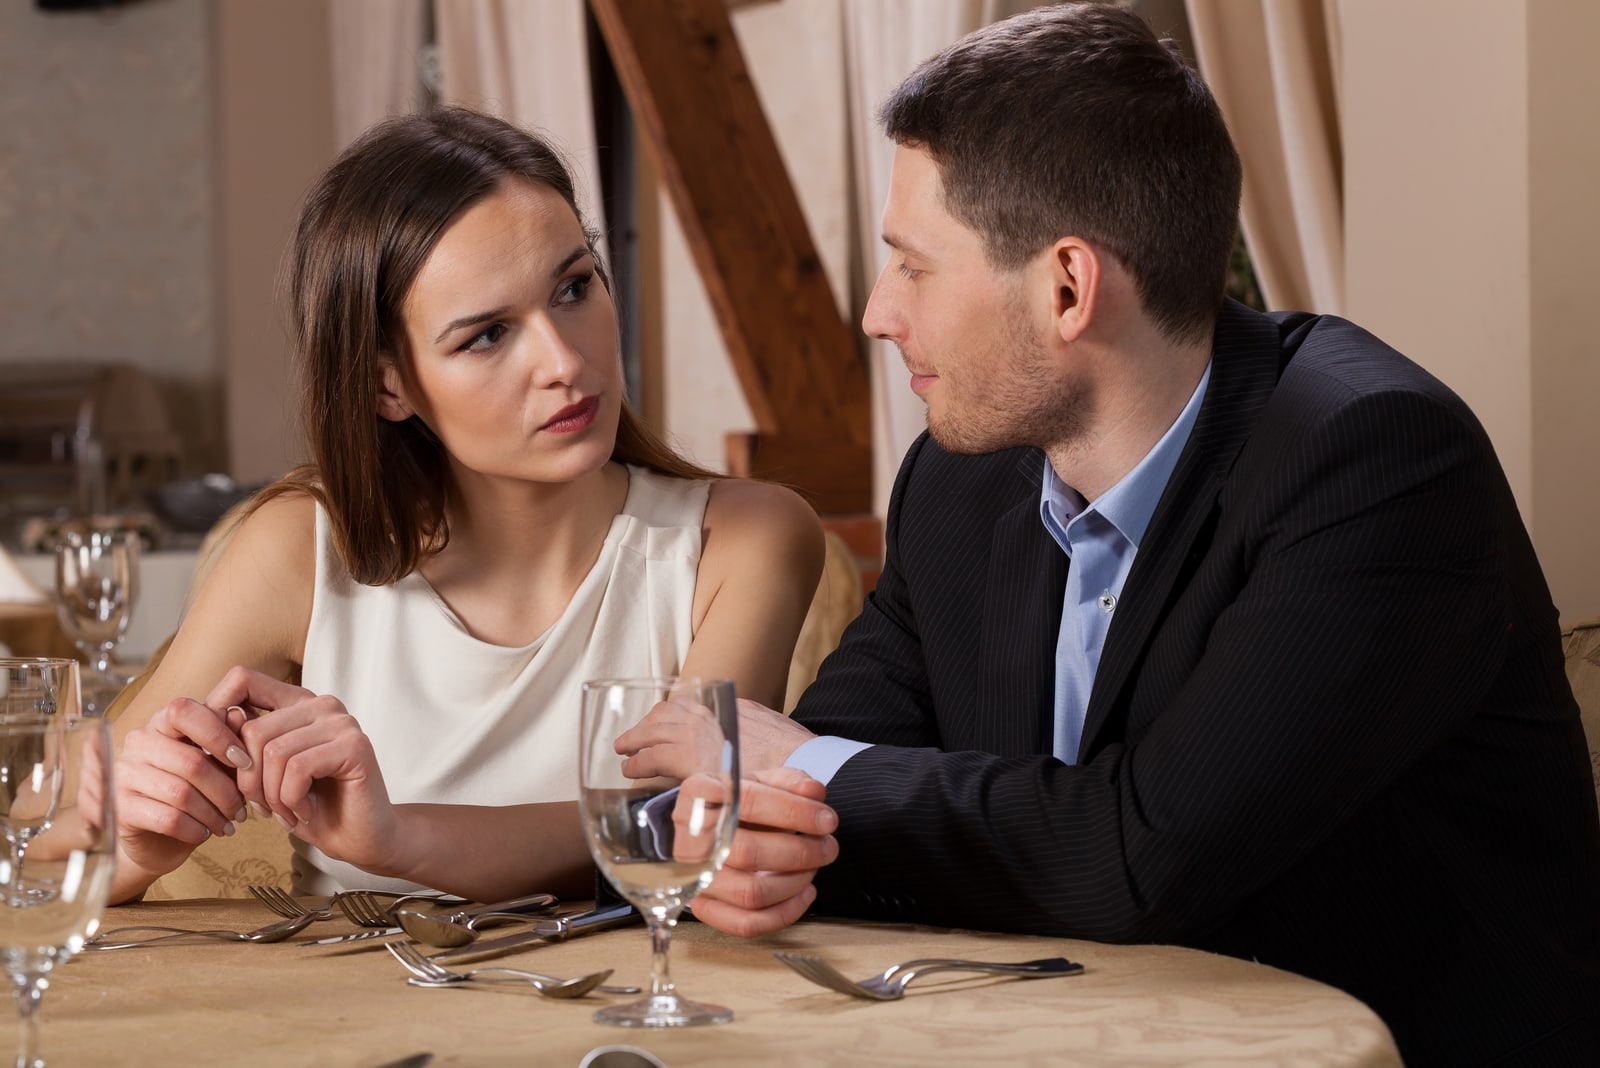 a man and a woman sit next to each other and talk